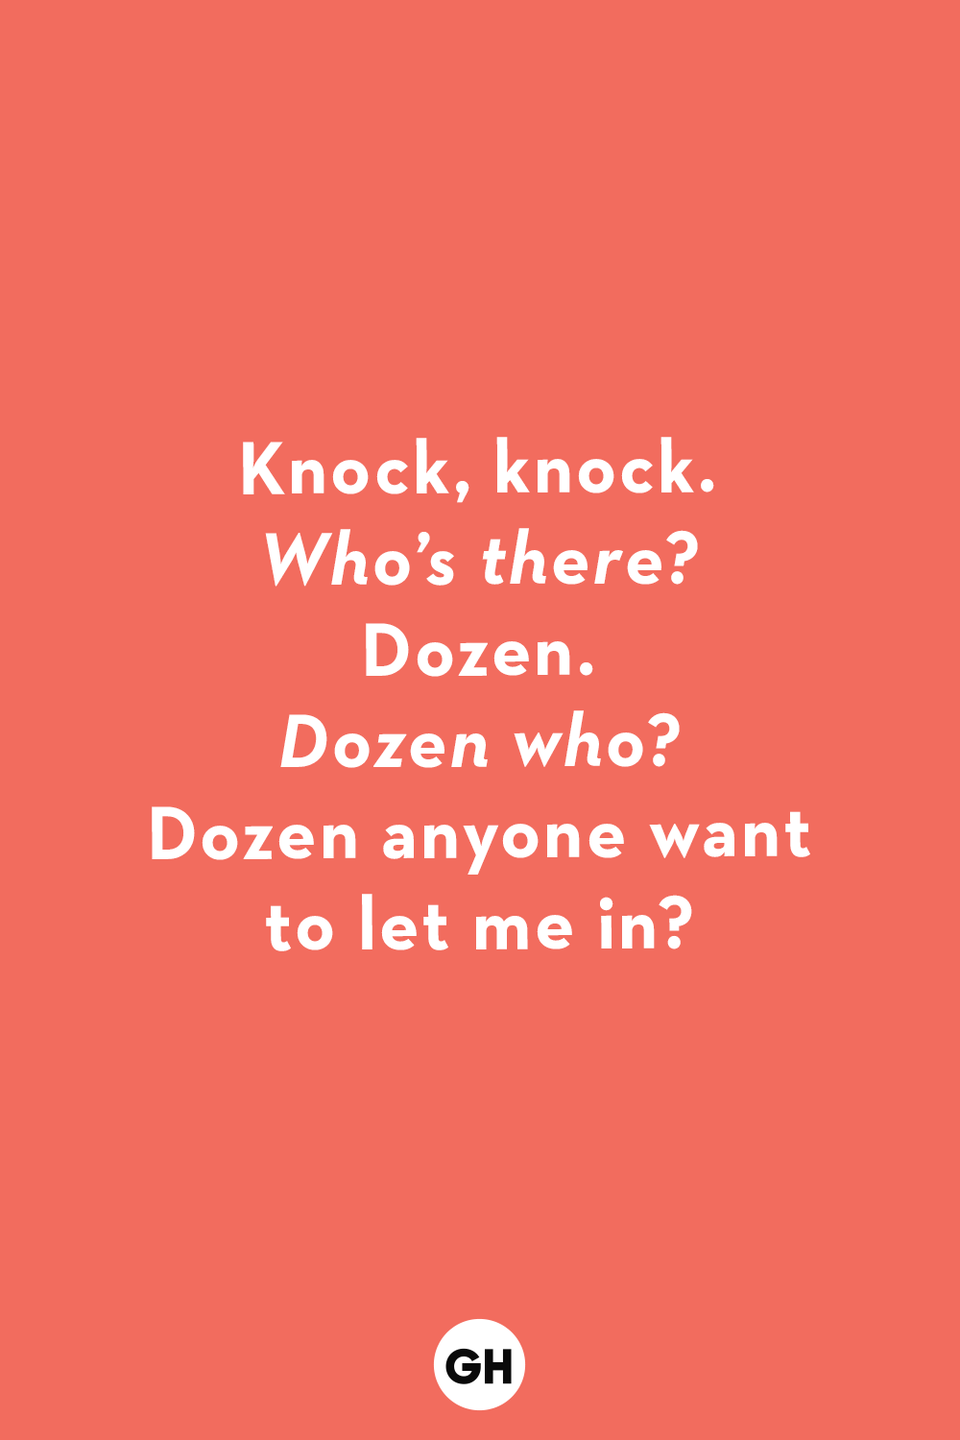 <p><em>Who's there?</em></p><p>Dozen.</p><p><em>Dozen who?</em></p><p>Dozen anyone want to let me in?</p>